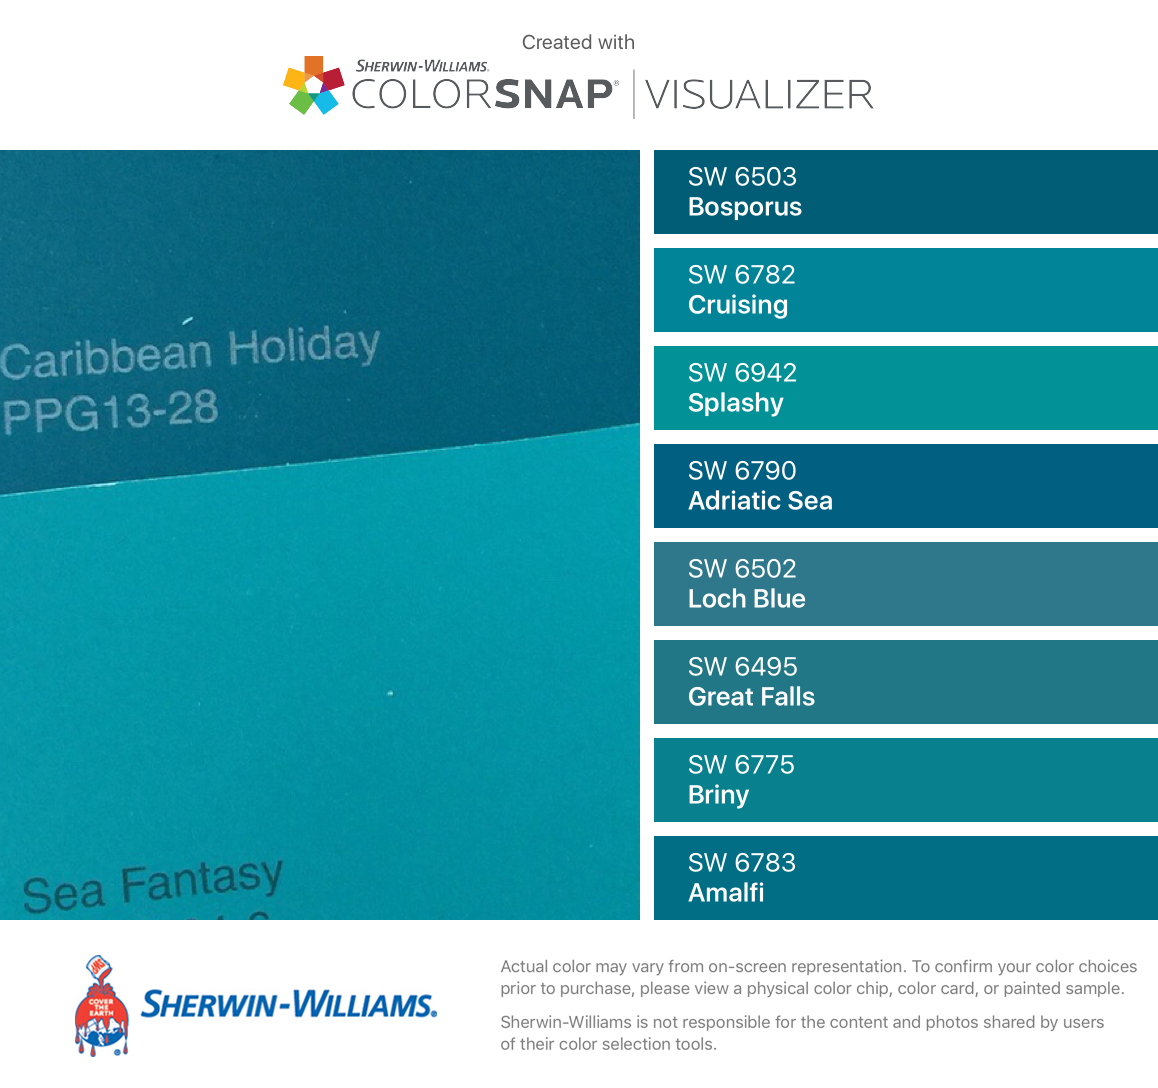 I Found These Colors With Colorsnap Visualizer For Iphone By Sherwin Williams Bosporus Sherwin Williams Sherwin Williams Paint Colors Paint Colors For Home [ 1088 x 1158 Pixel ]